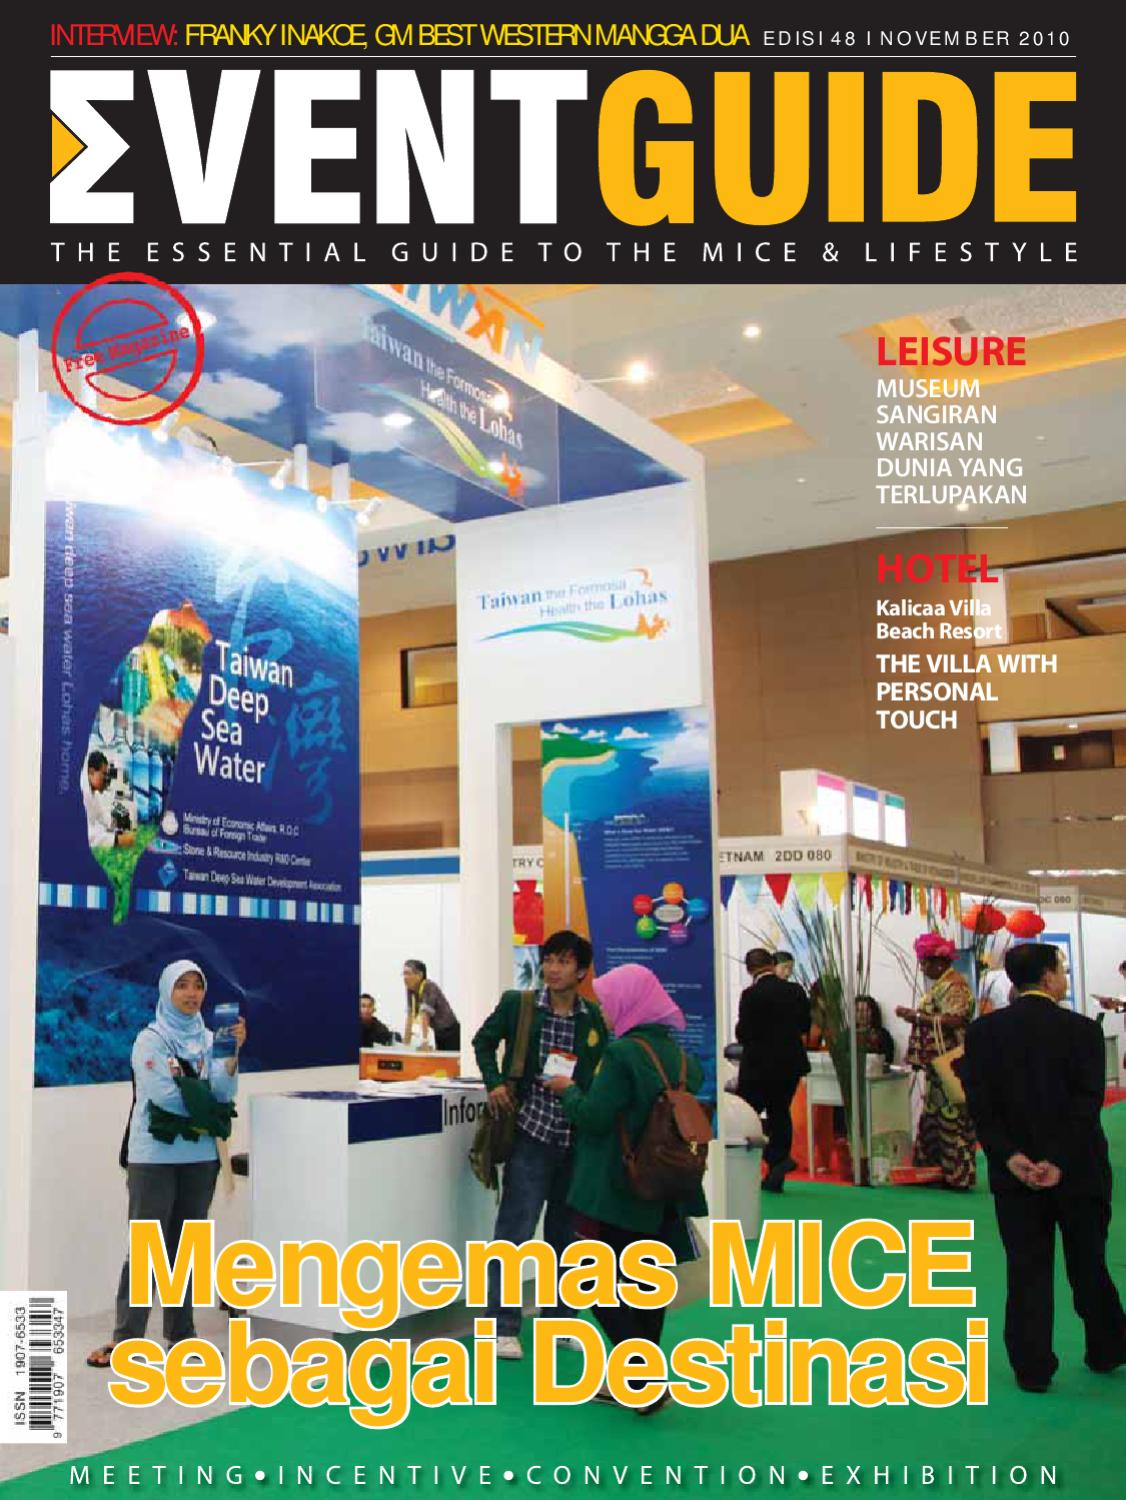 Eventguide Magazine Indonesia By Event Guide Issuu Produk Ukm Bumn Kalung Tenun Wires 12